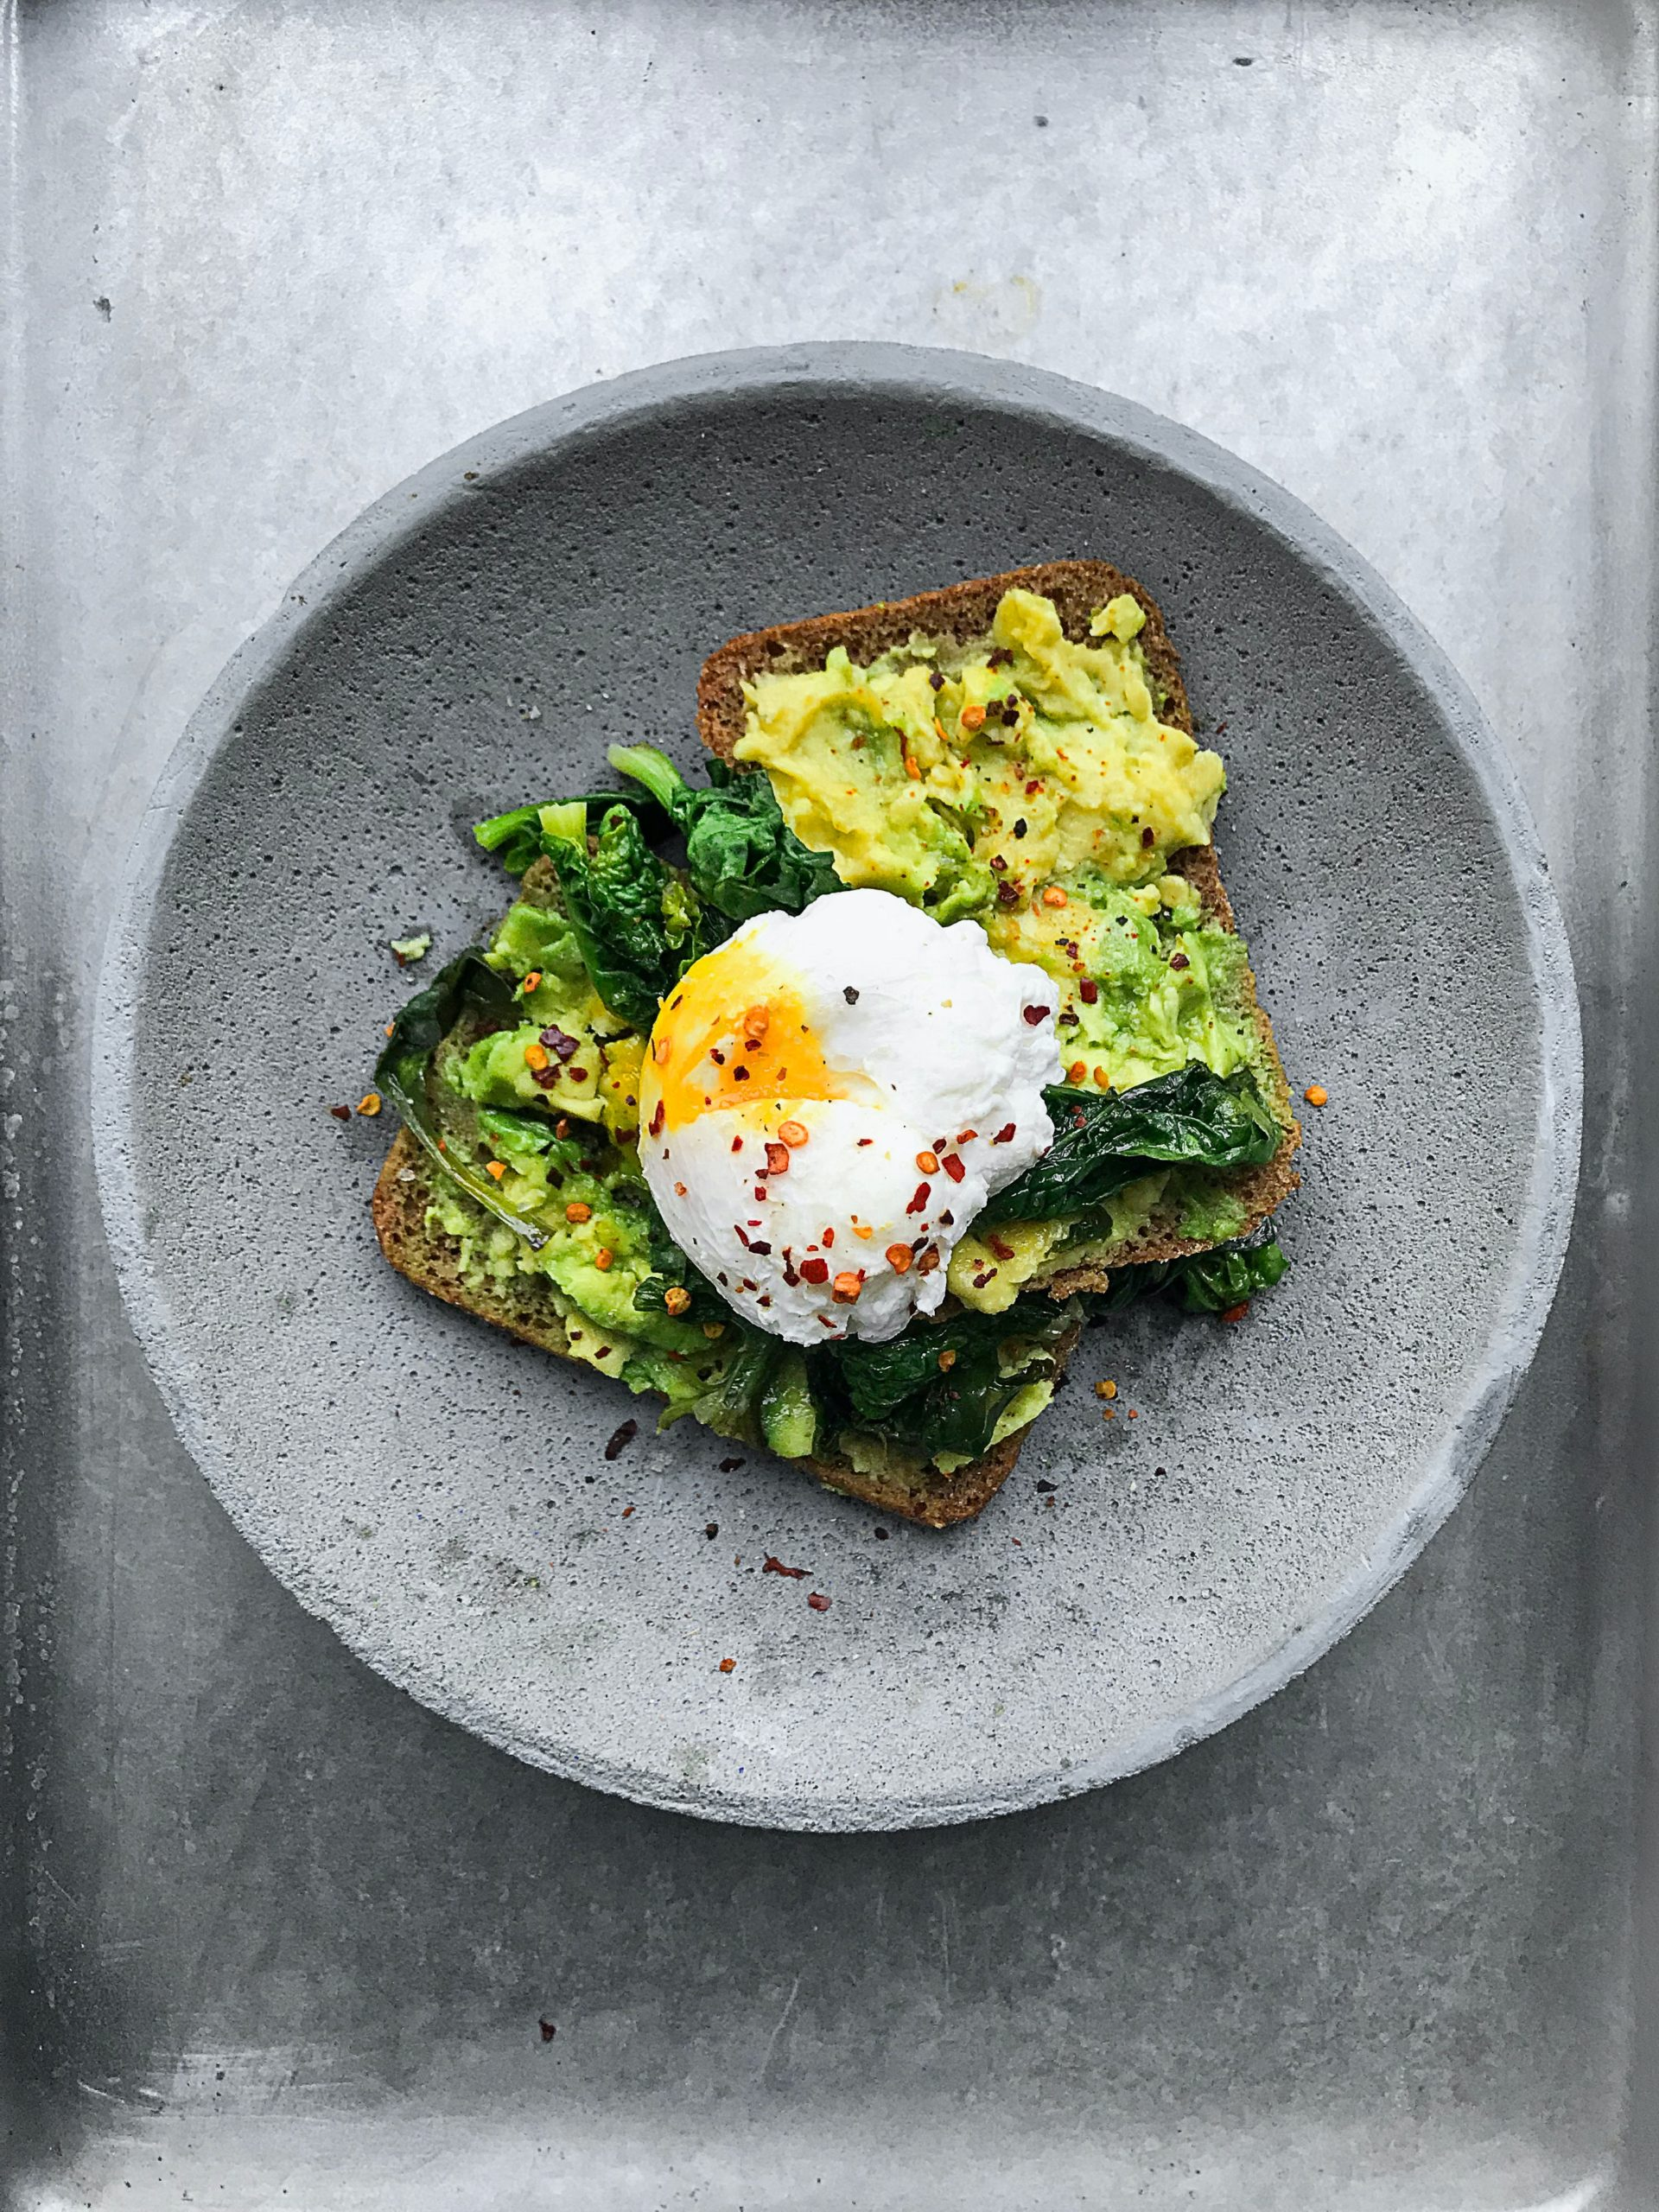 Egg and guac